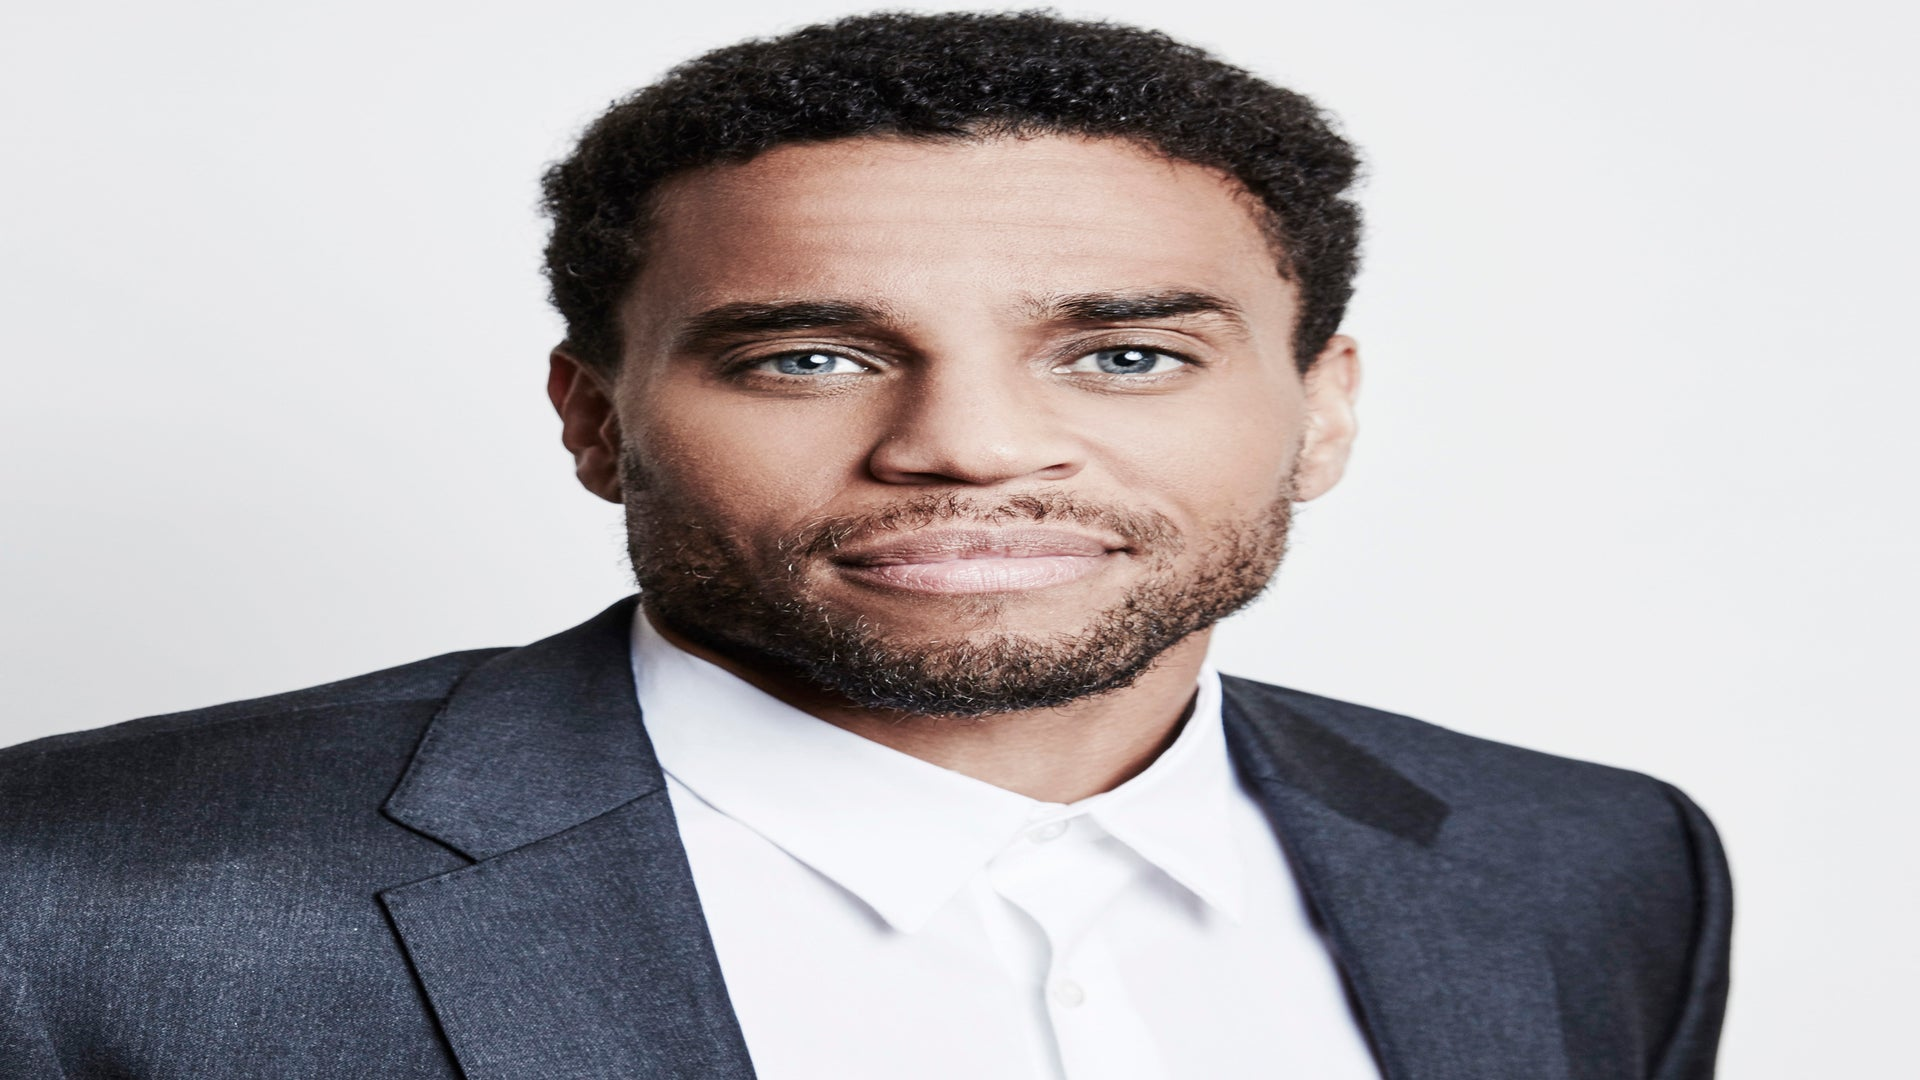 Michael Ealy Shares Photo Of His Wife For #NoMuslimBan